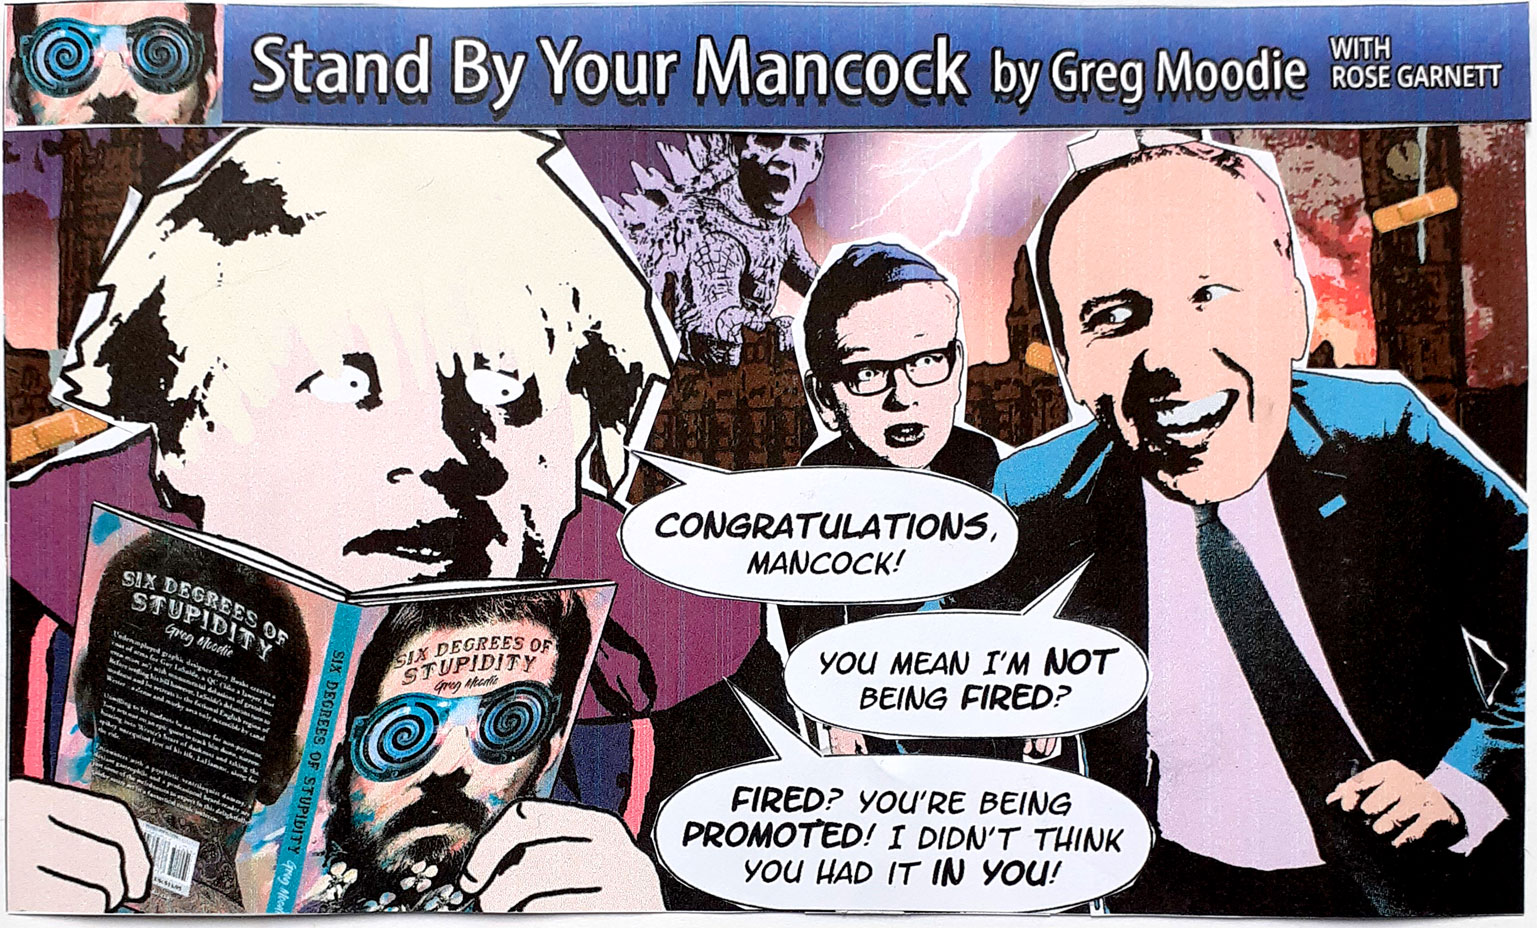 Stand By Your Mancock